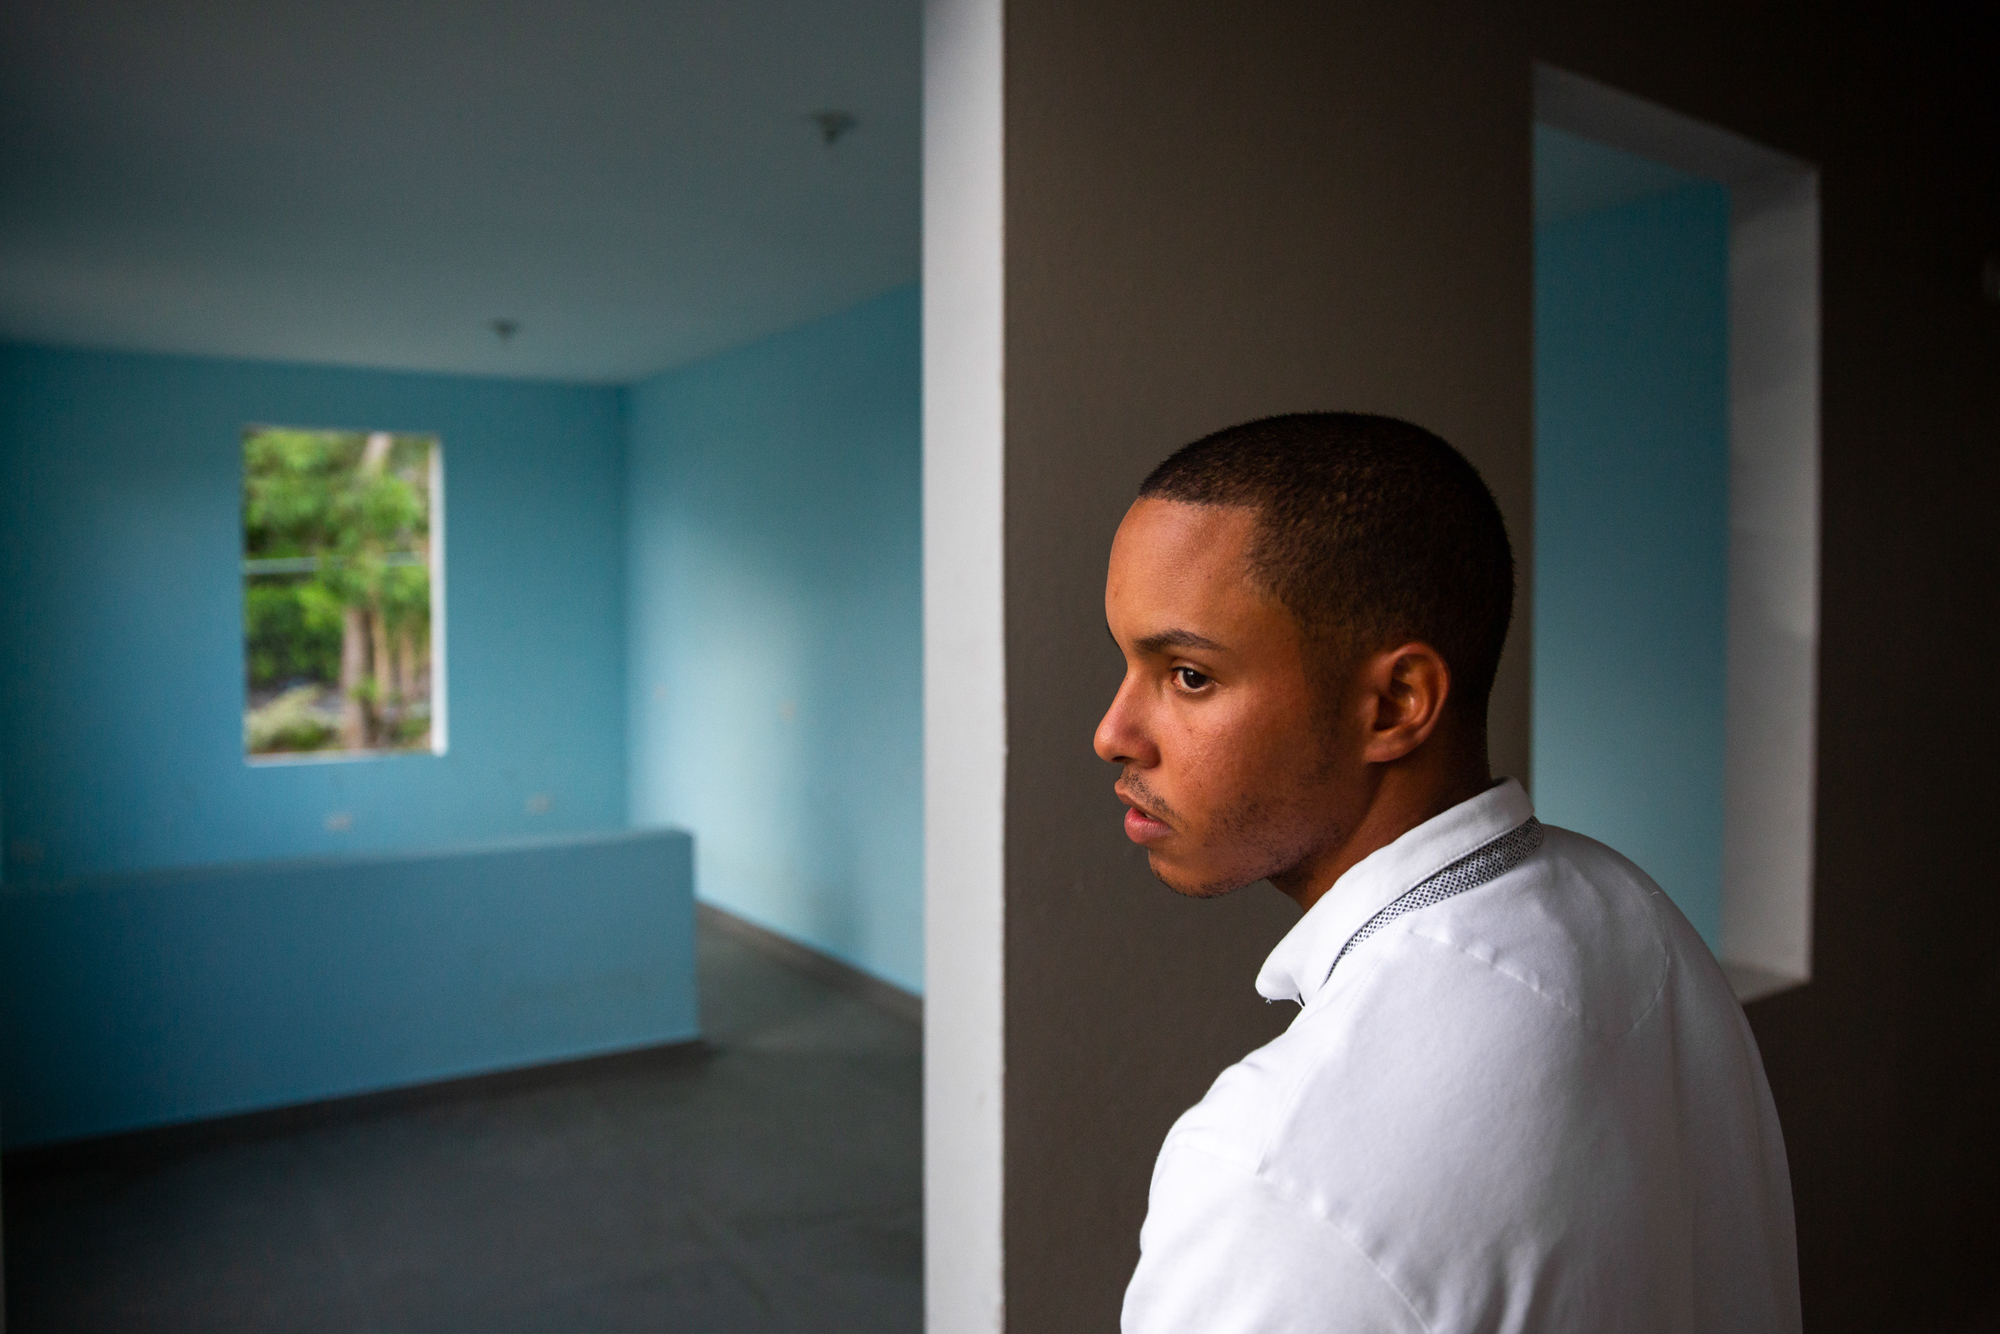 "Omar Charriez - Omar Charriez, 22, has lived at the Forjadores de Esperanza shelter in Puerto Rico for nine years. During Hurricane Maria, the shelter lost its roof and Charriez helped the other boys stay calm. After the storm was over, Charriez worried about the shelter's future. ""I was thinking 'What is going to happen now?'"" he recalled. ""If the shelter is actually going to close, what is going to happen with the kids?"" (Ellen O'Brien/News21)"